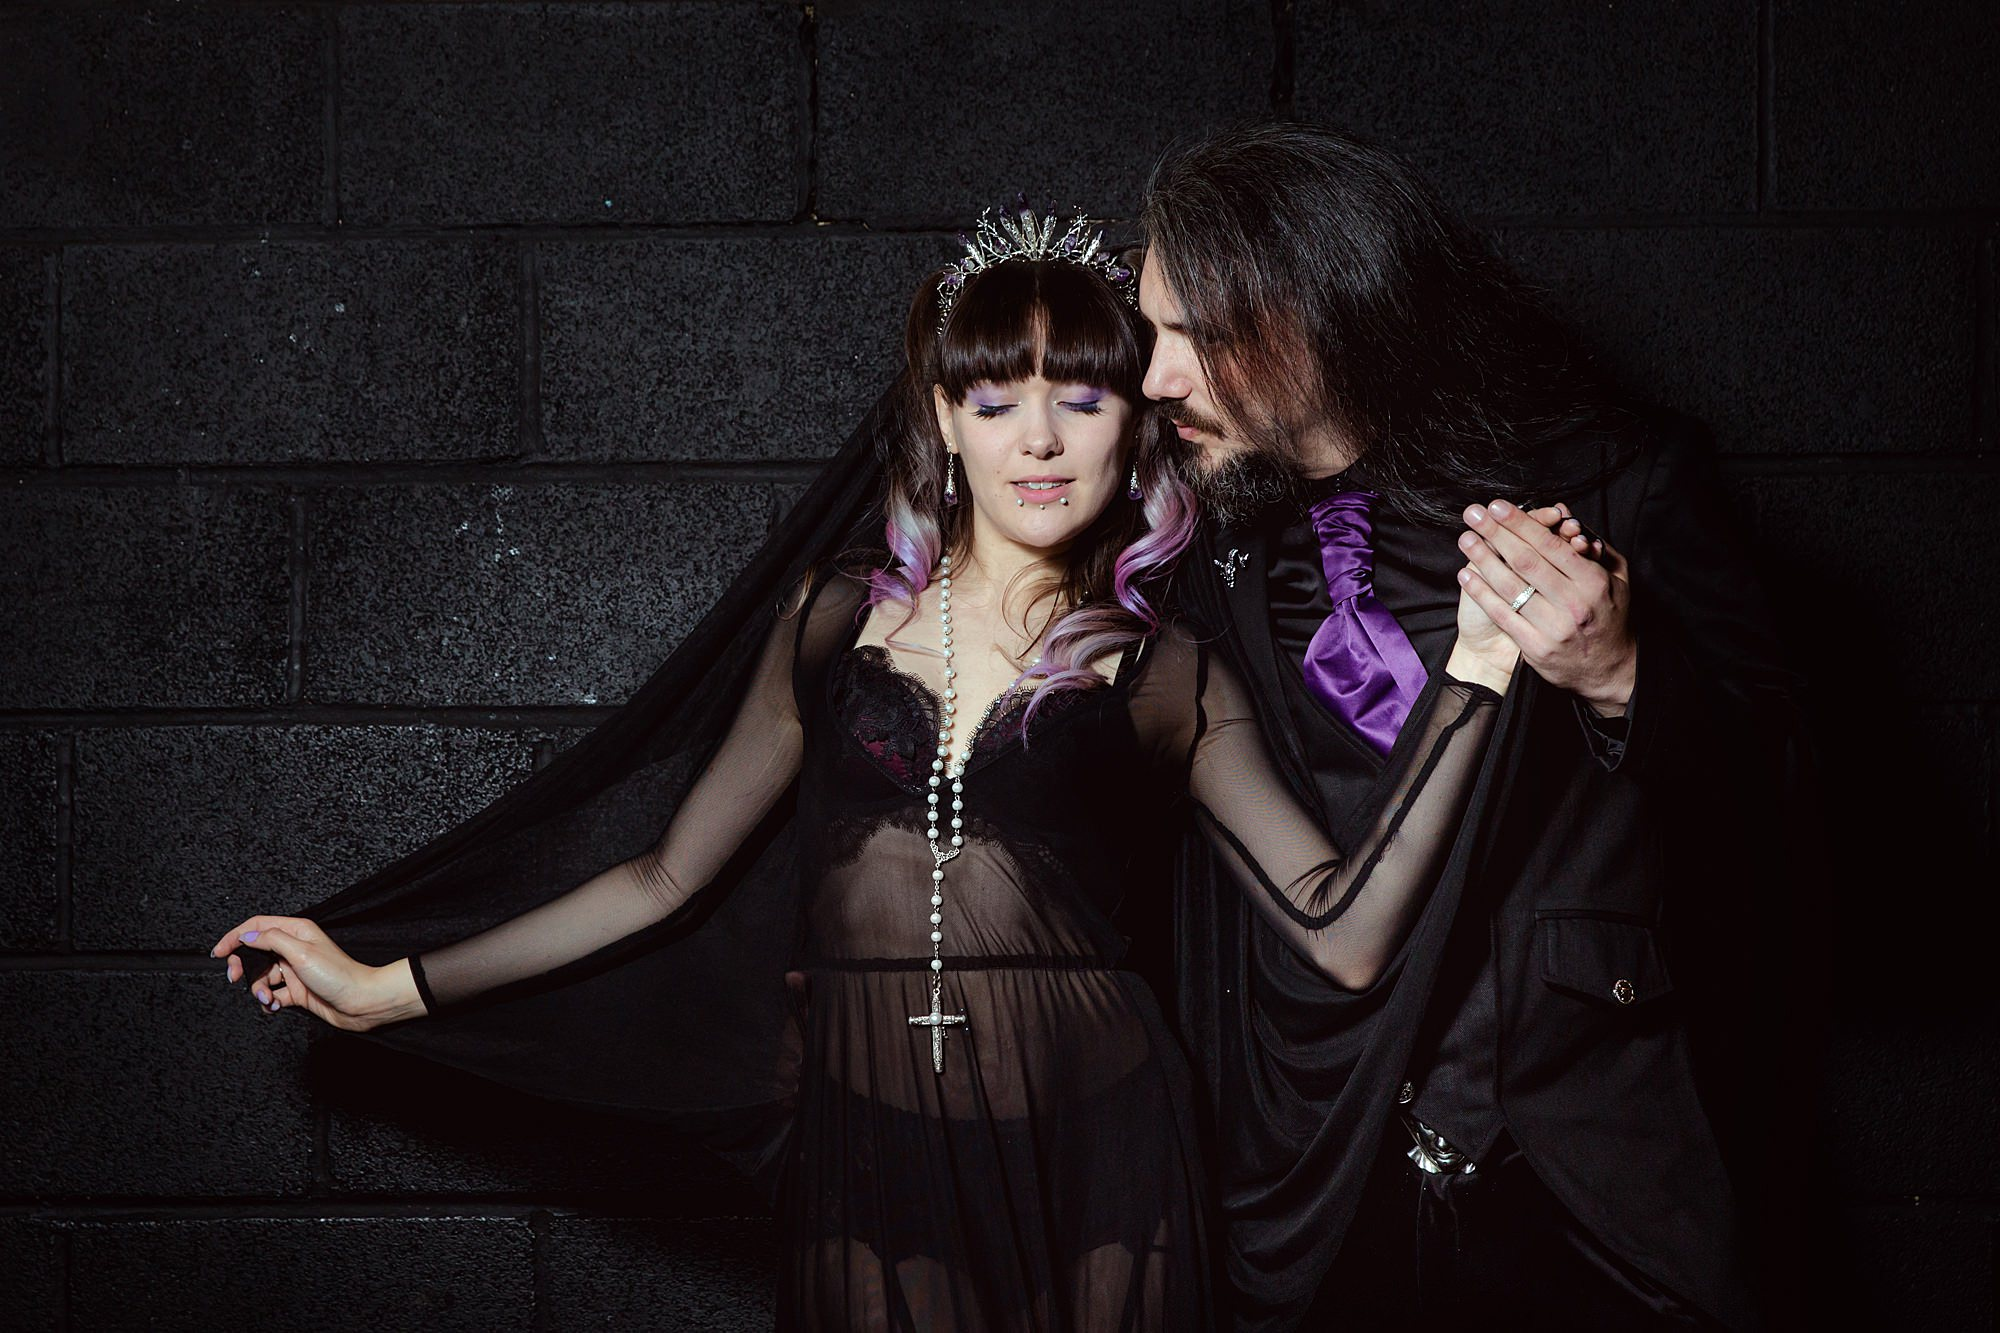 bride and groom pose together in black outfits in front of black wall at goth wedding